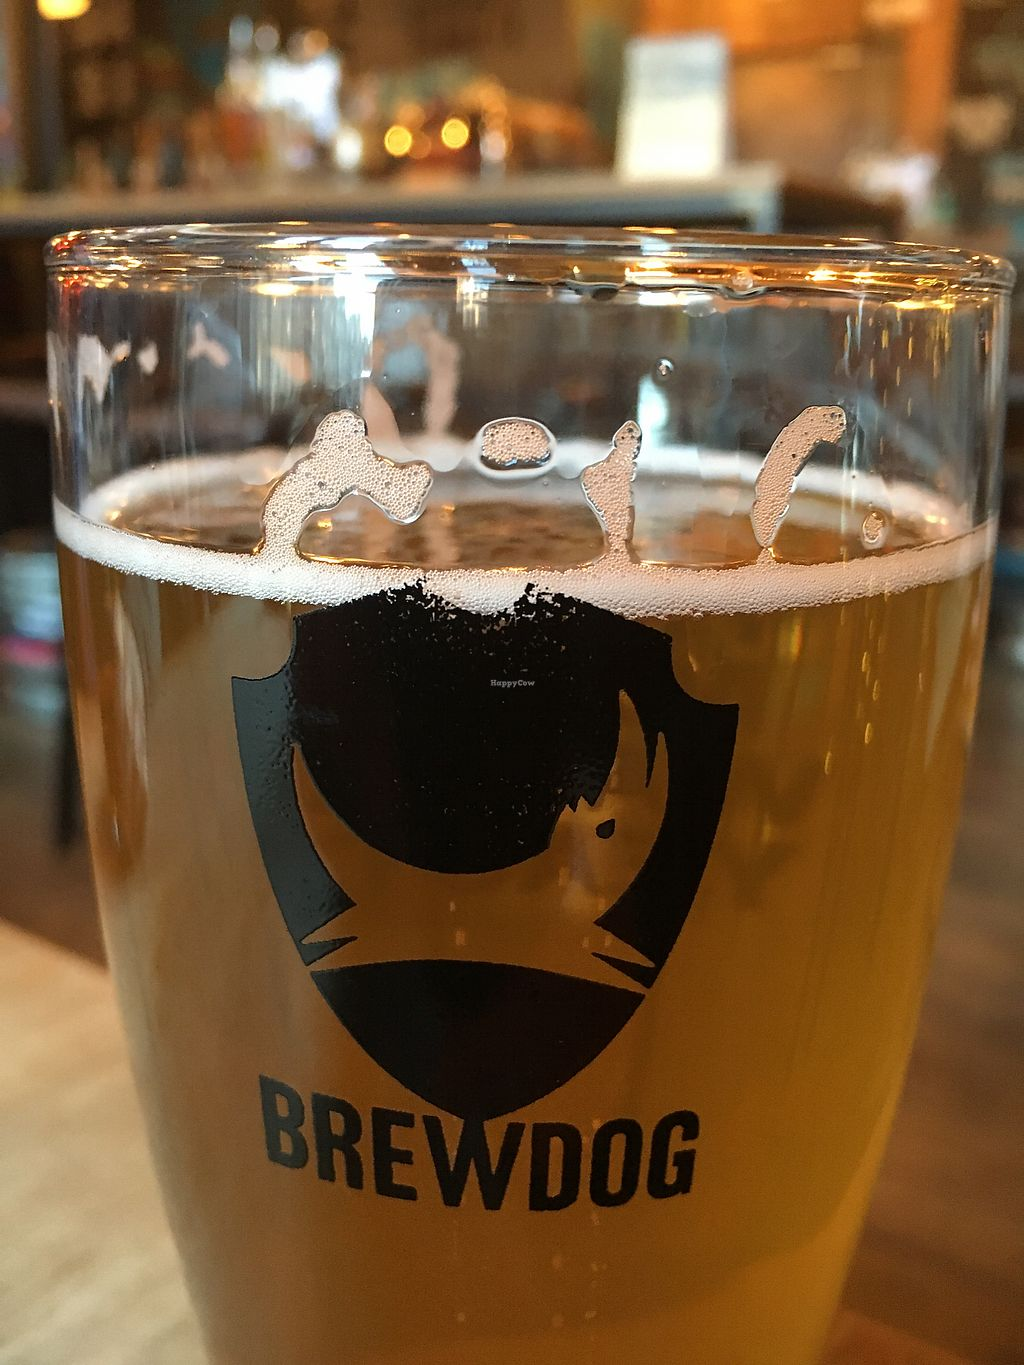 """Photo of Brewdog  by <a href=""""/members/profile/hack_man"""">hack_man</a> <br/>Beer  <br/> December 10, 2017  - <a href='/contact/abuse/image/82193/334301'>Report</a>"""